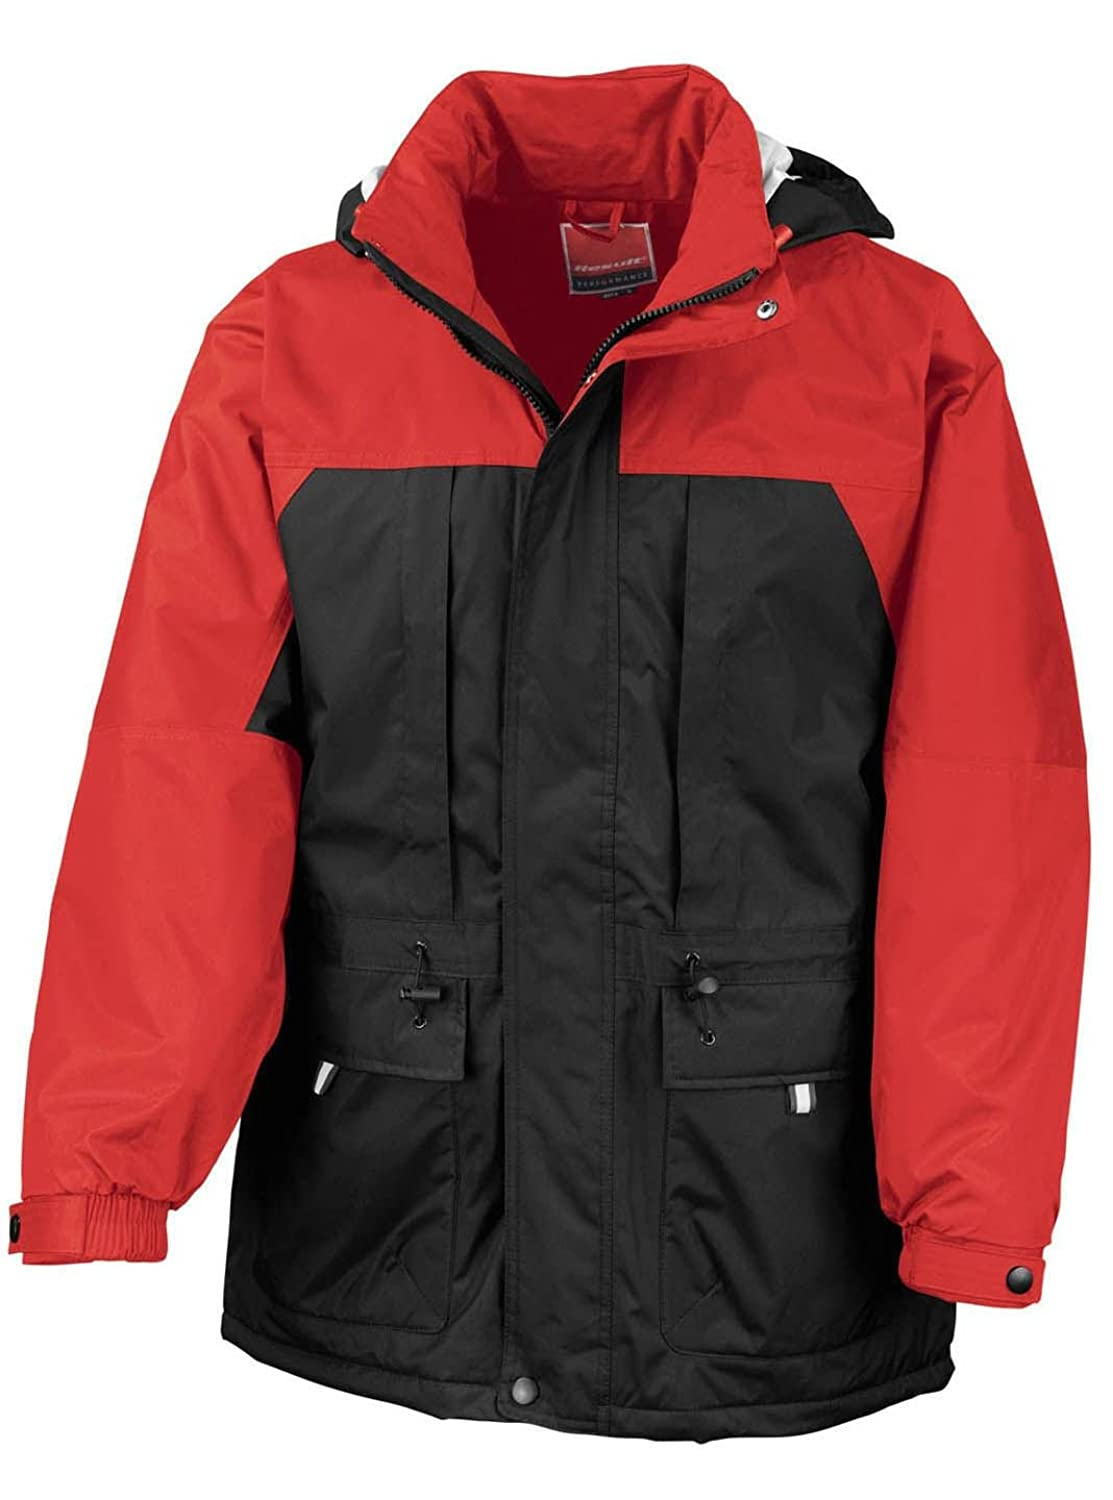 Result R065X Multi Function Winter Jacket Coat Black/Red 3XL